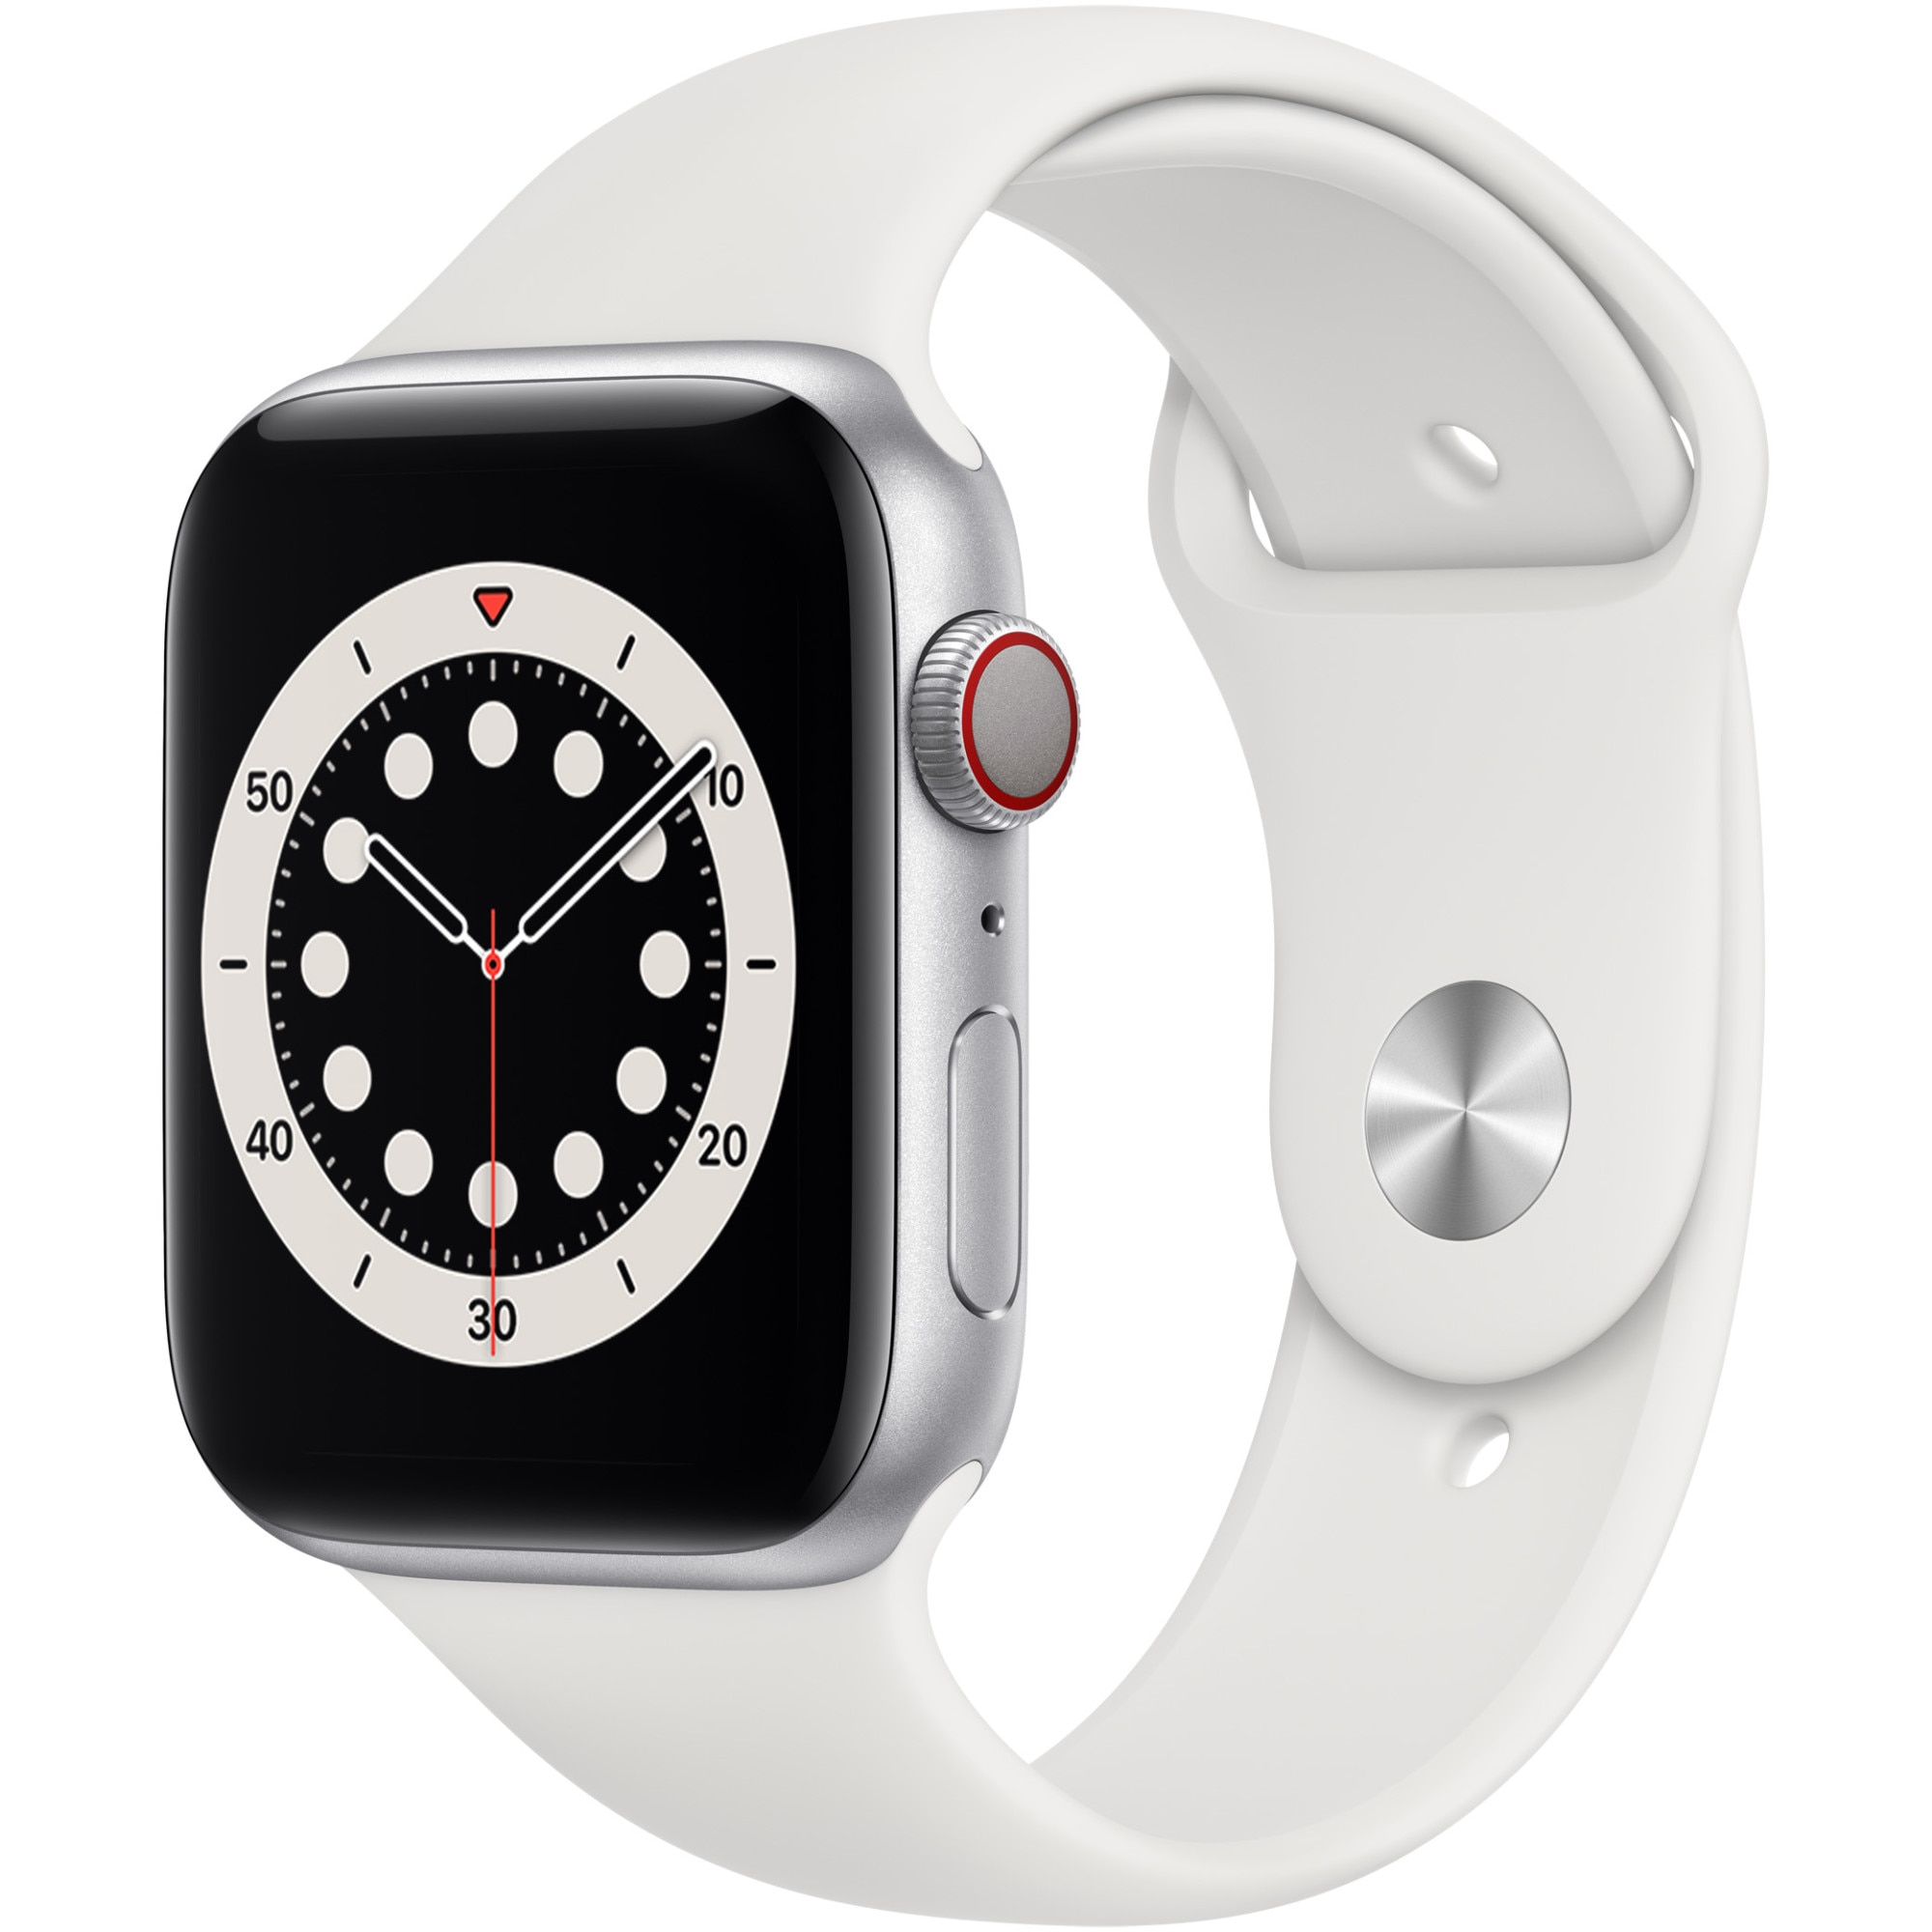 Fotografie Apple Watch 6, GPS, Cellular, Carcasa Silver Aluminium 44mm, White Sport Band